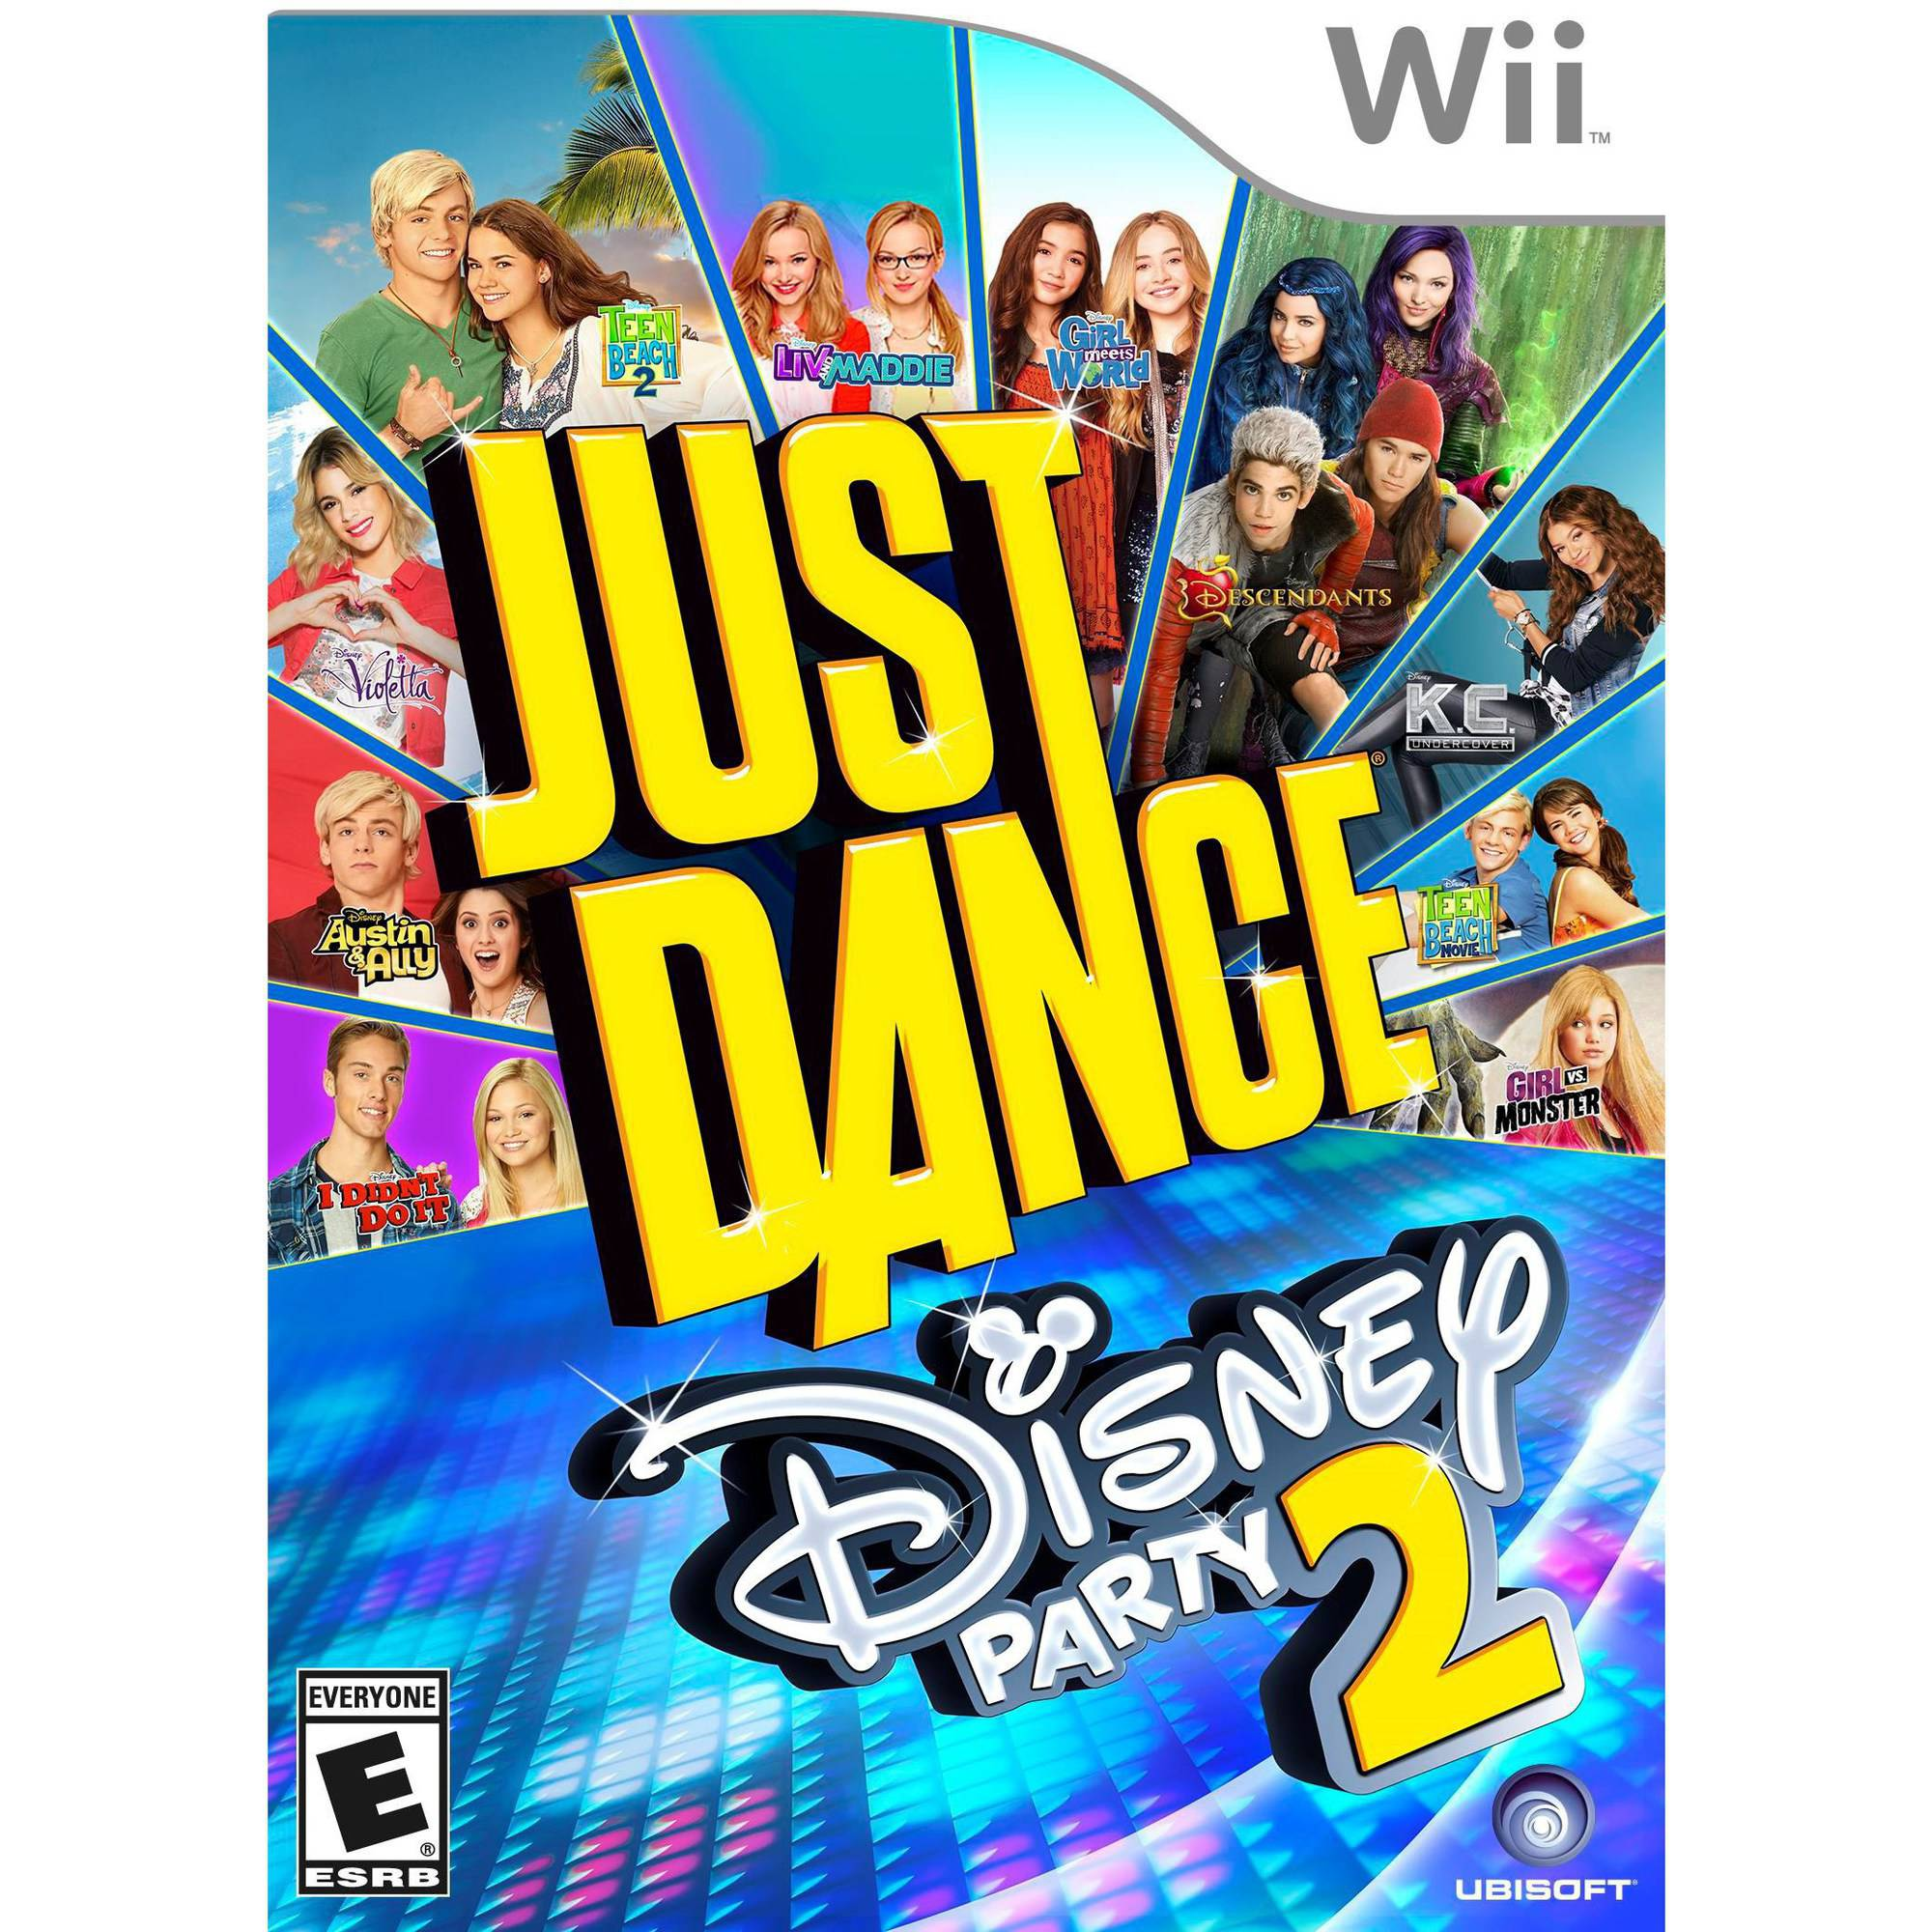 Just Dance: Disney Party 2, Ubisoft, Nintendo Wii, 887256014209